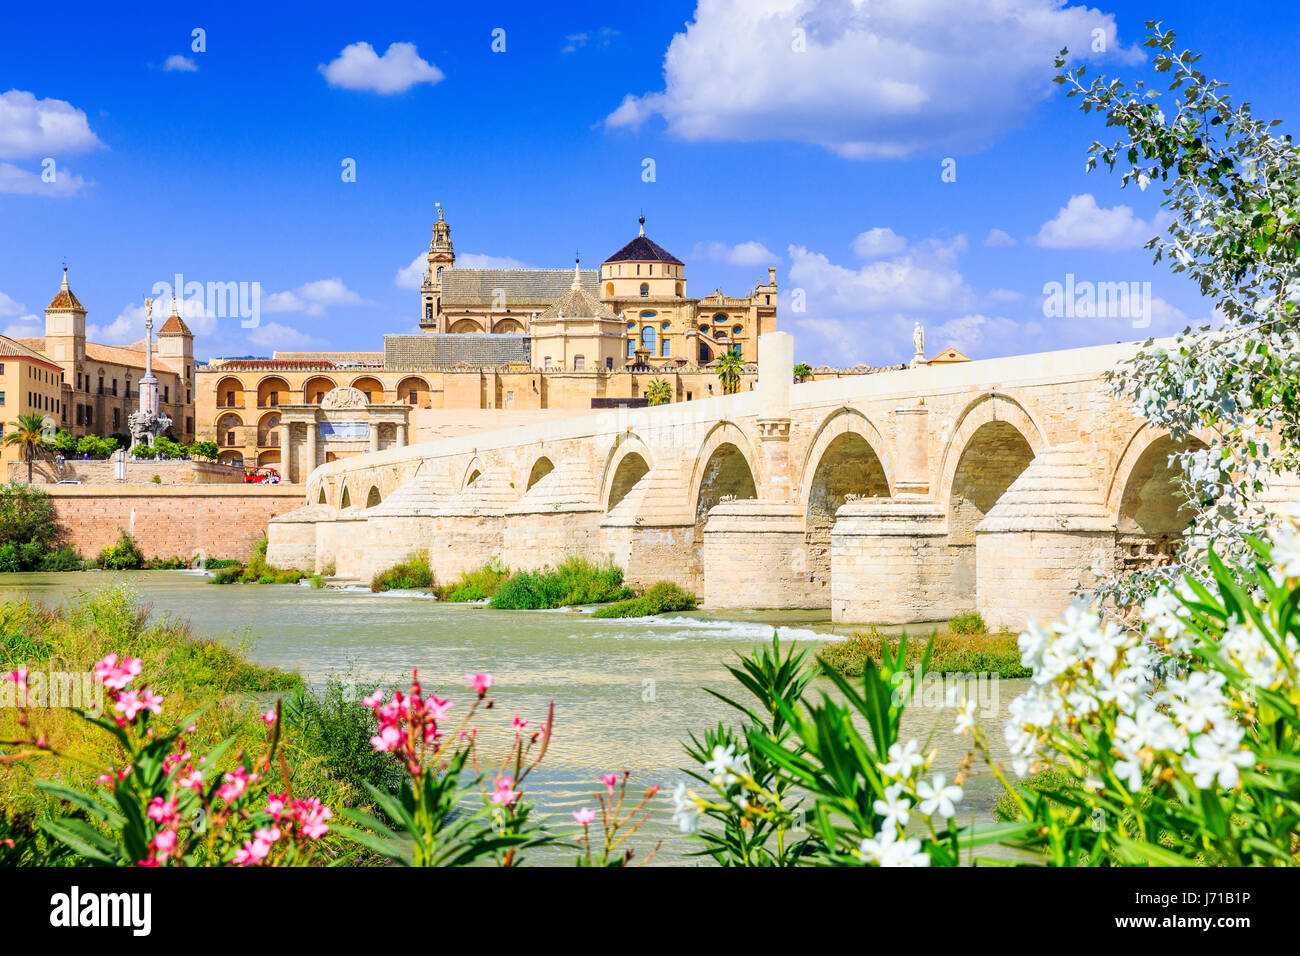 Cordoba, Spain. The Roman Bridge and Mosque (Cathedral) on the Guadalquivir River. - Stock Image